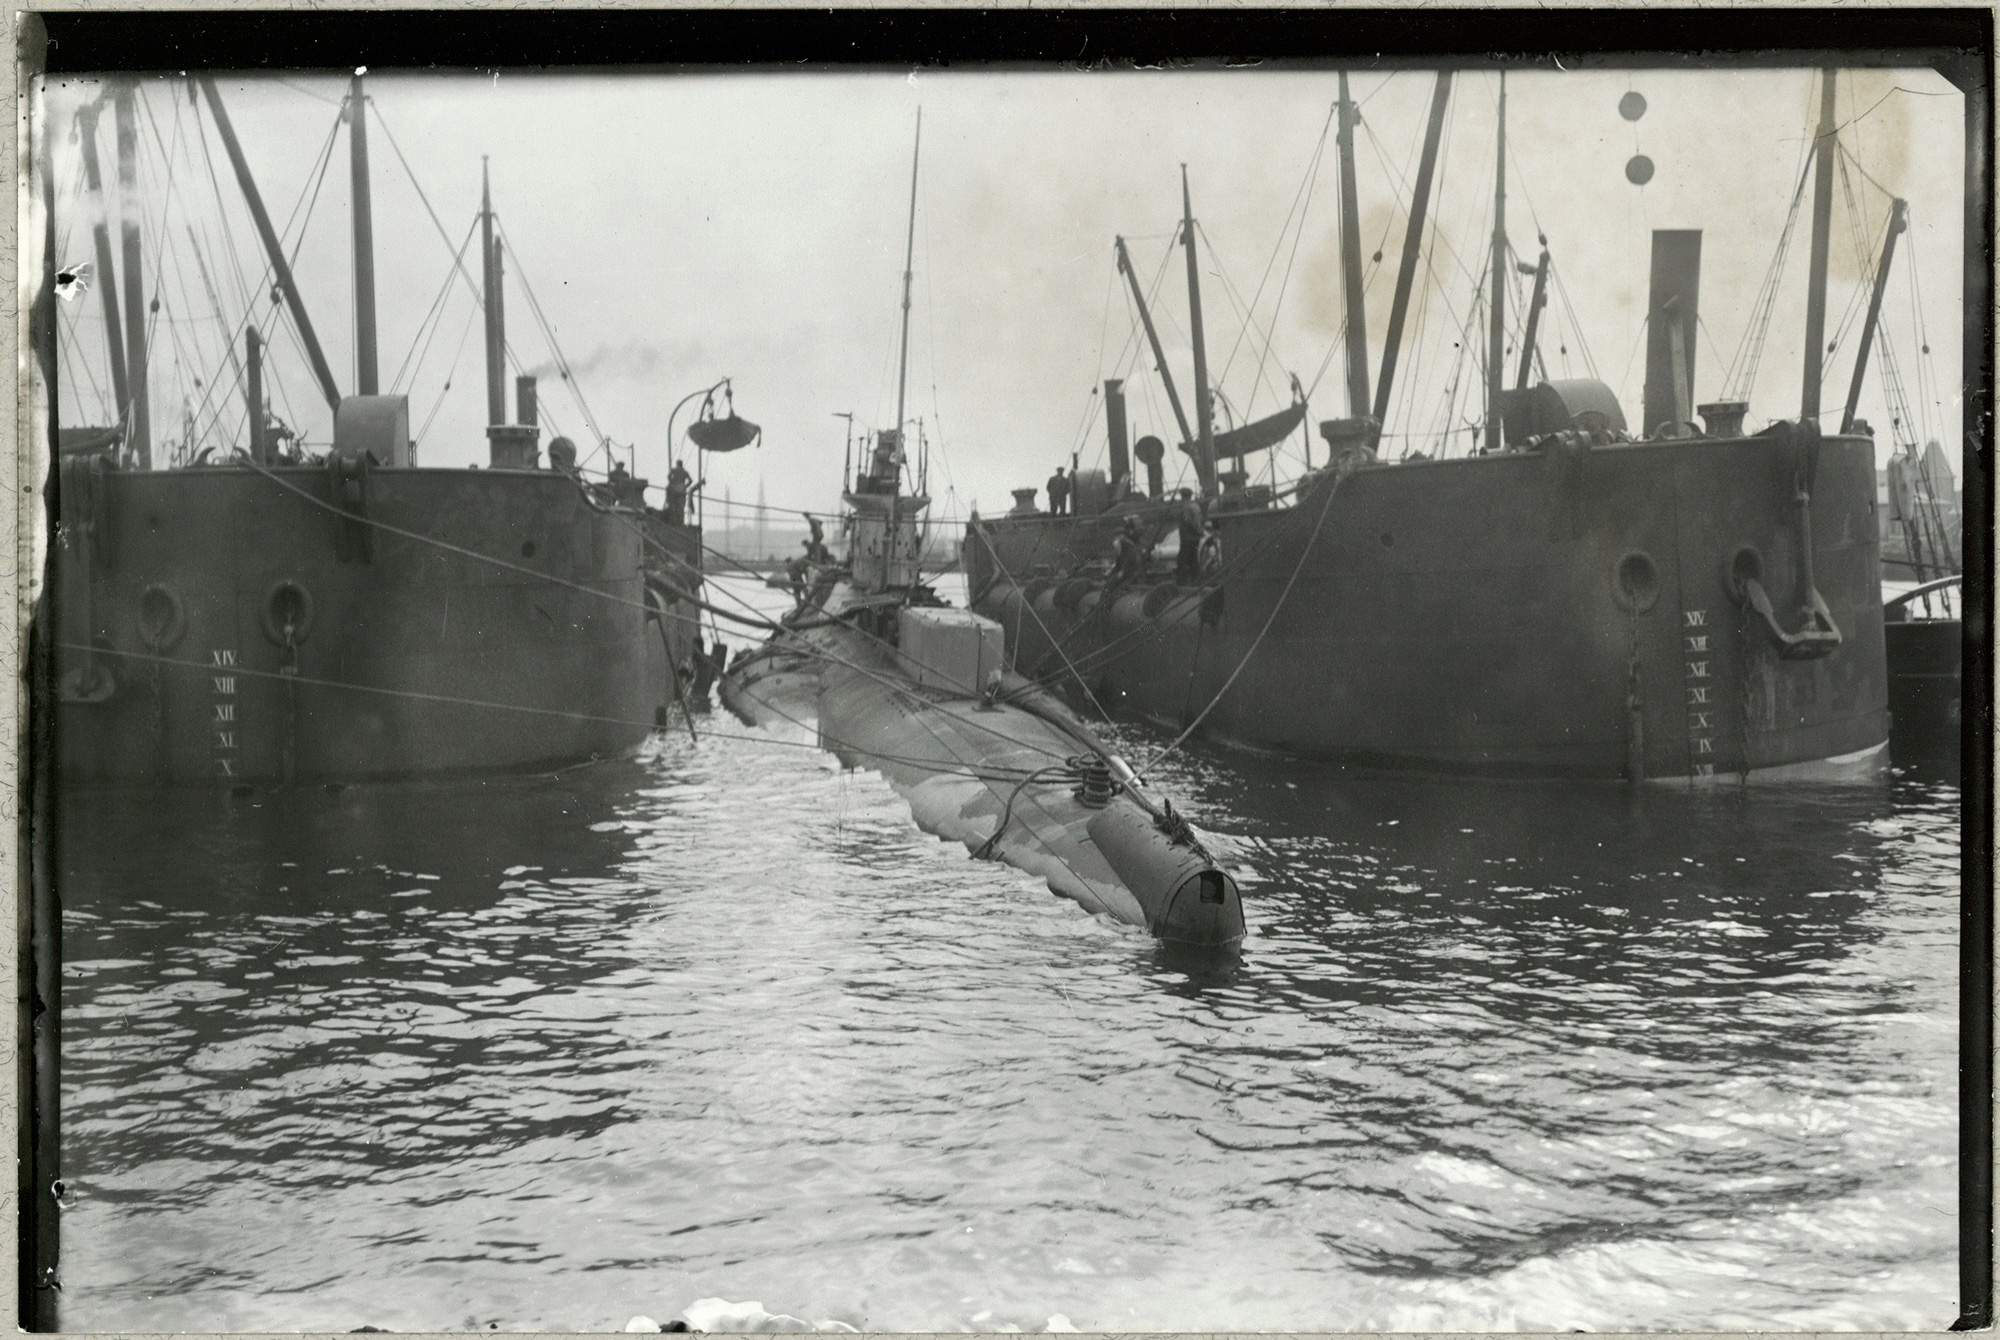 Photo of the English submarine E.13 being towed after being destroyed by German torpedo boats on Danish territory